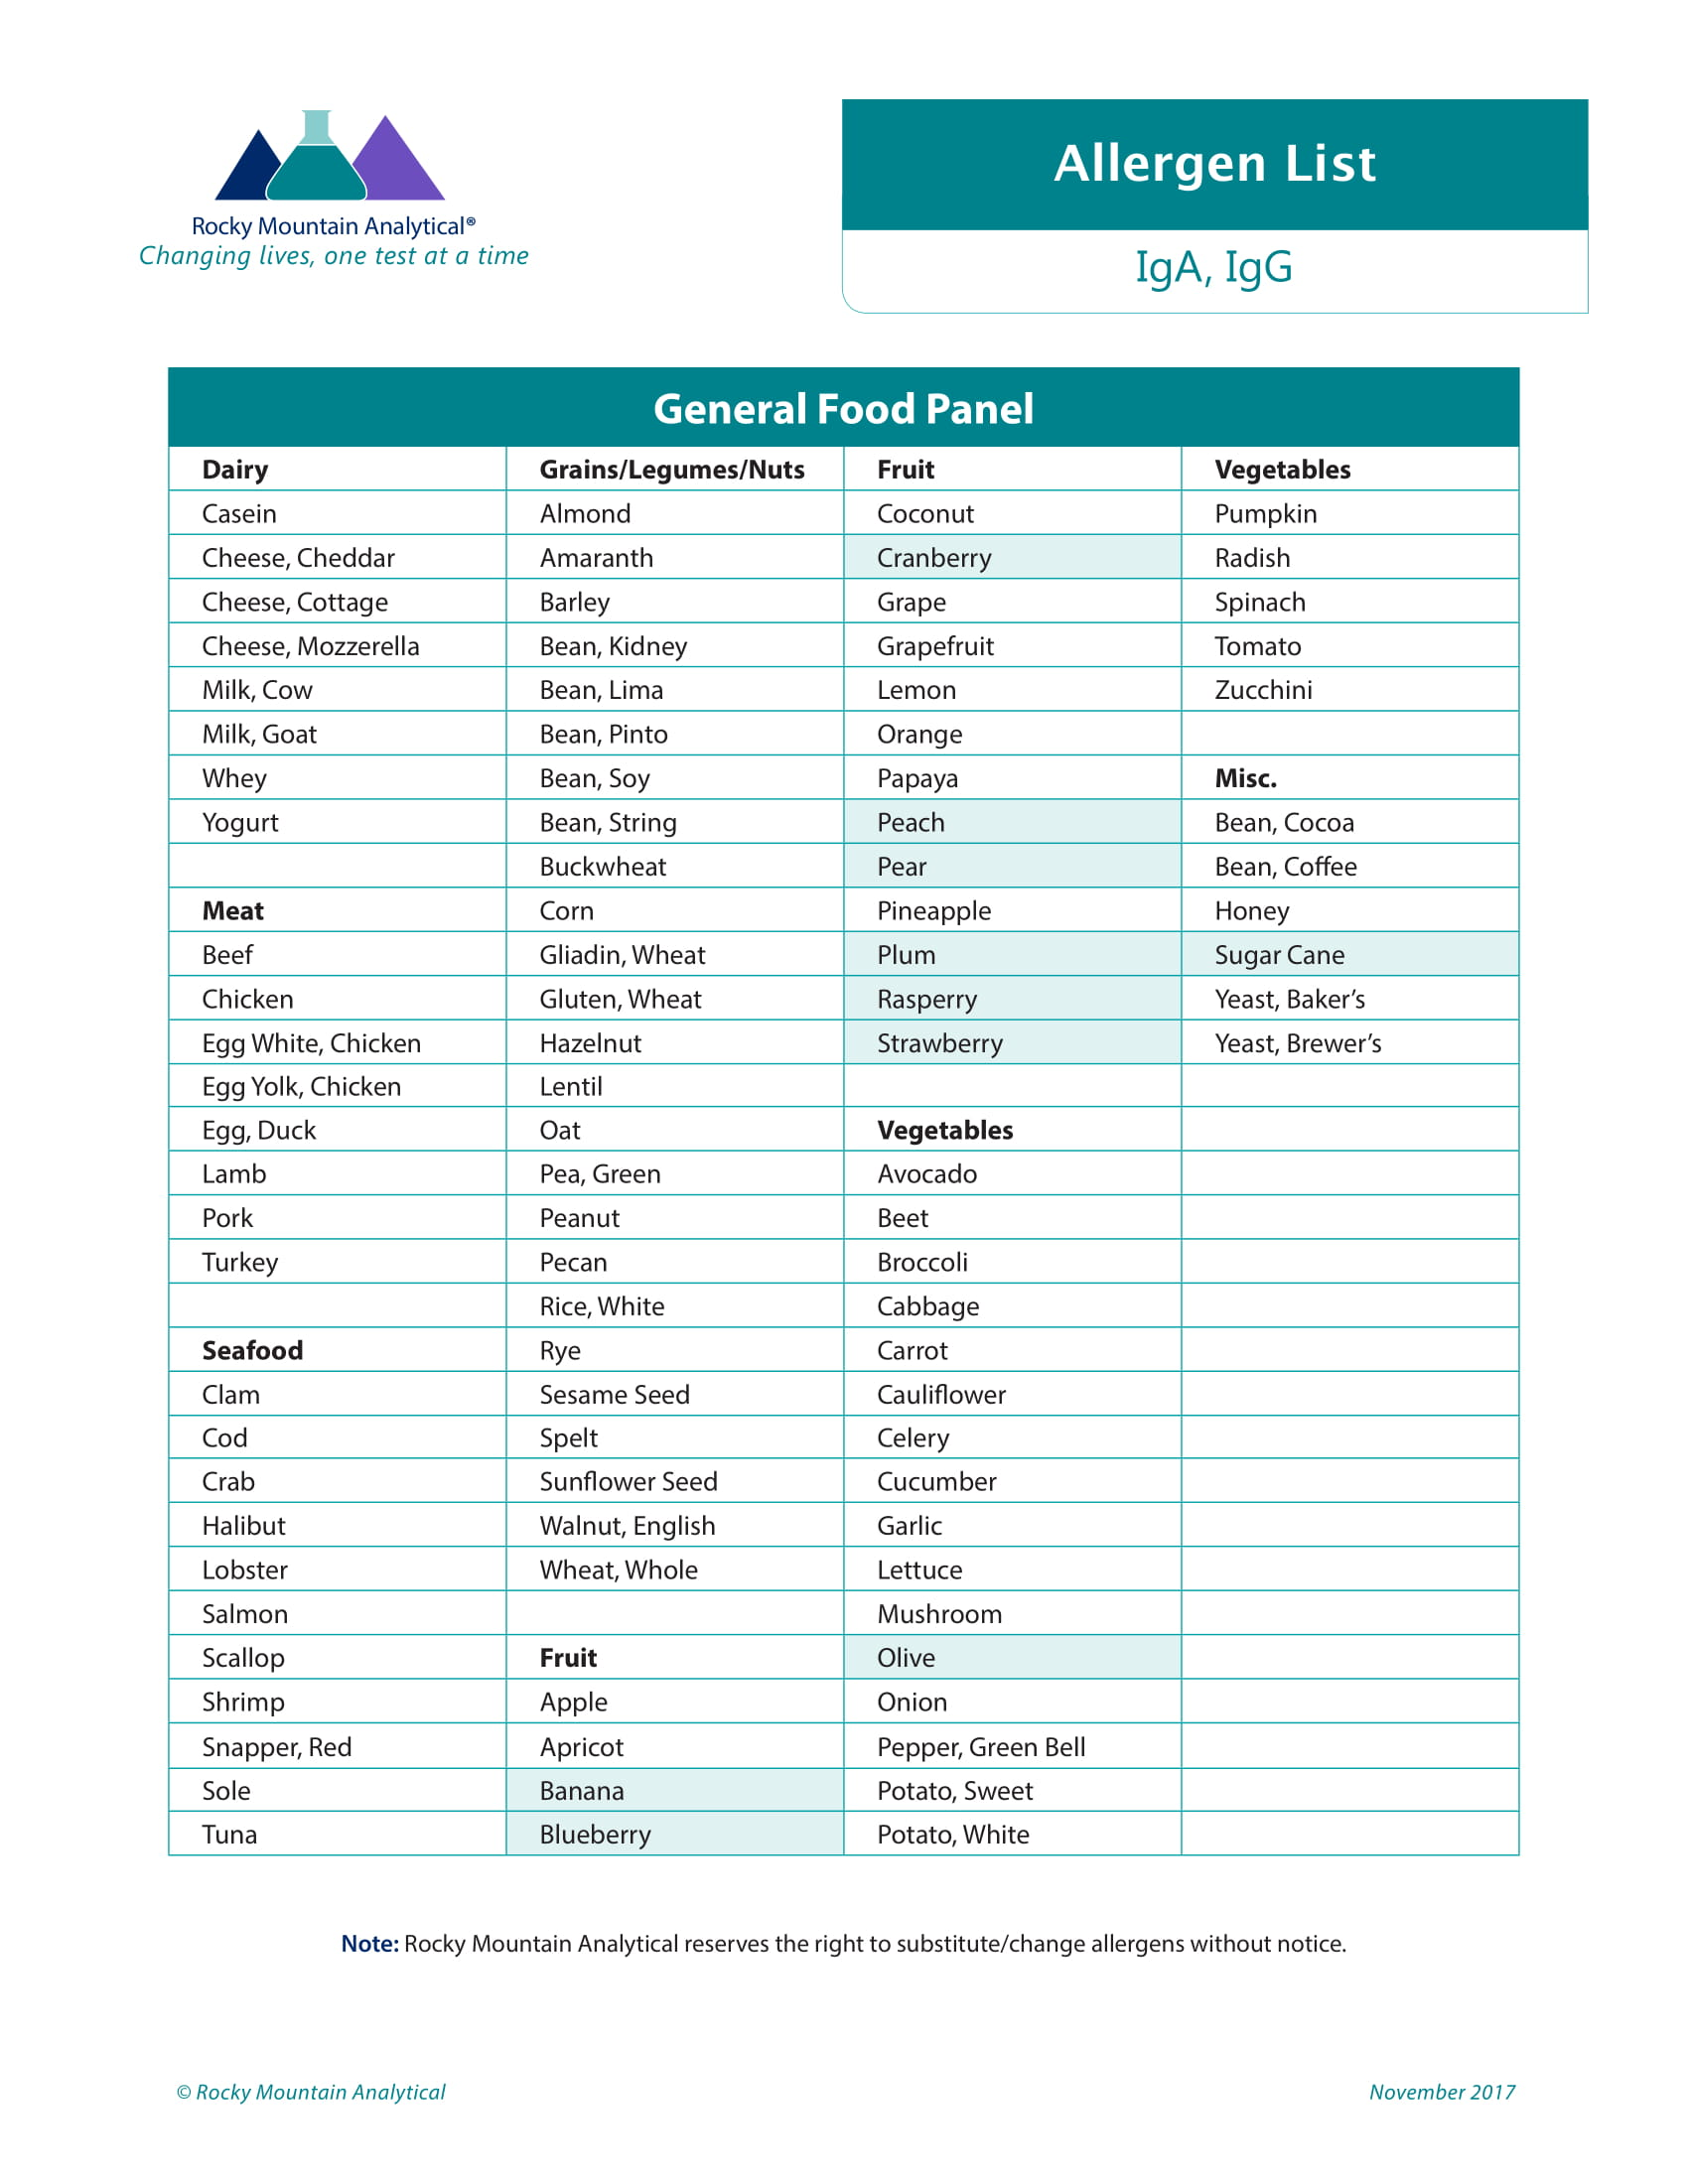 RMA IgA Food Reactions_Allergen List-1